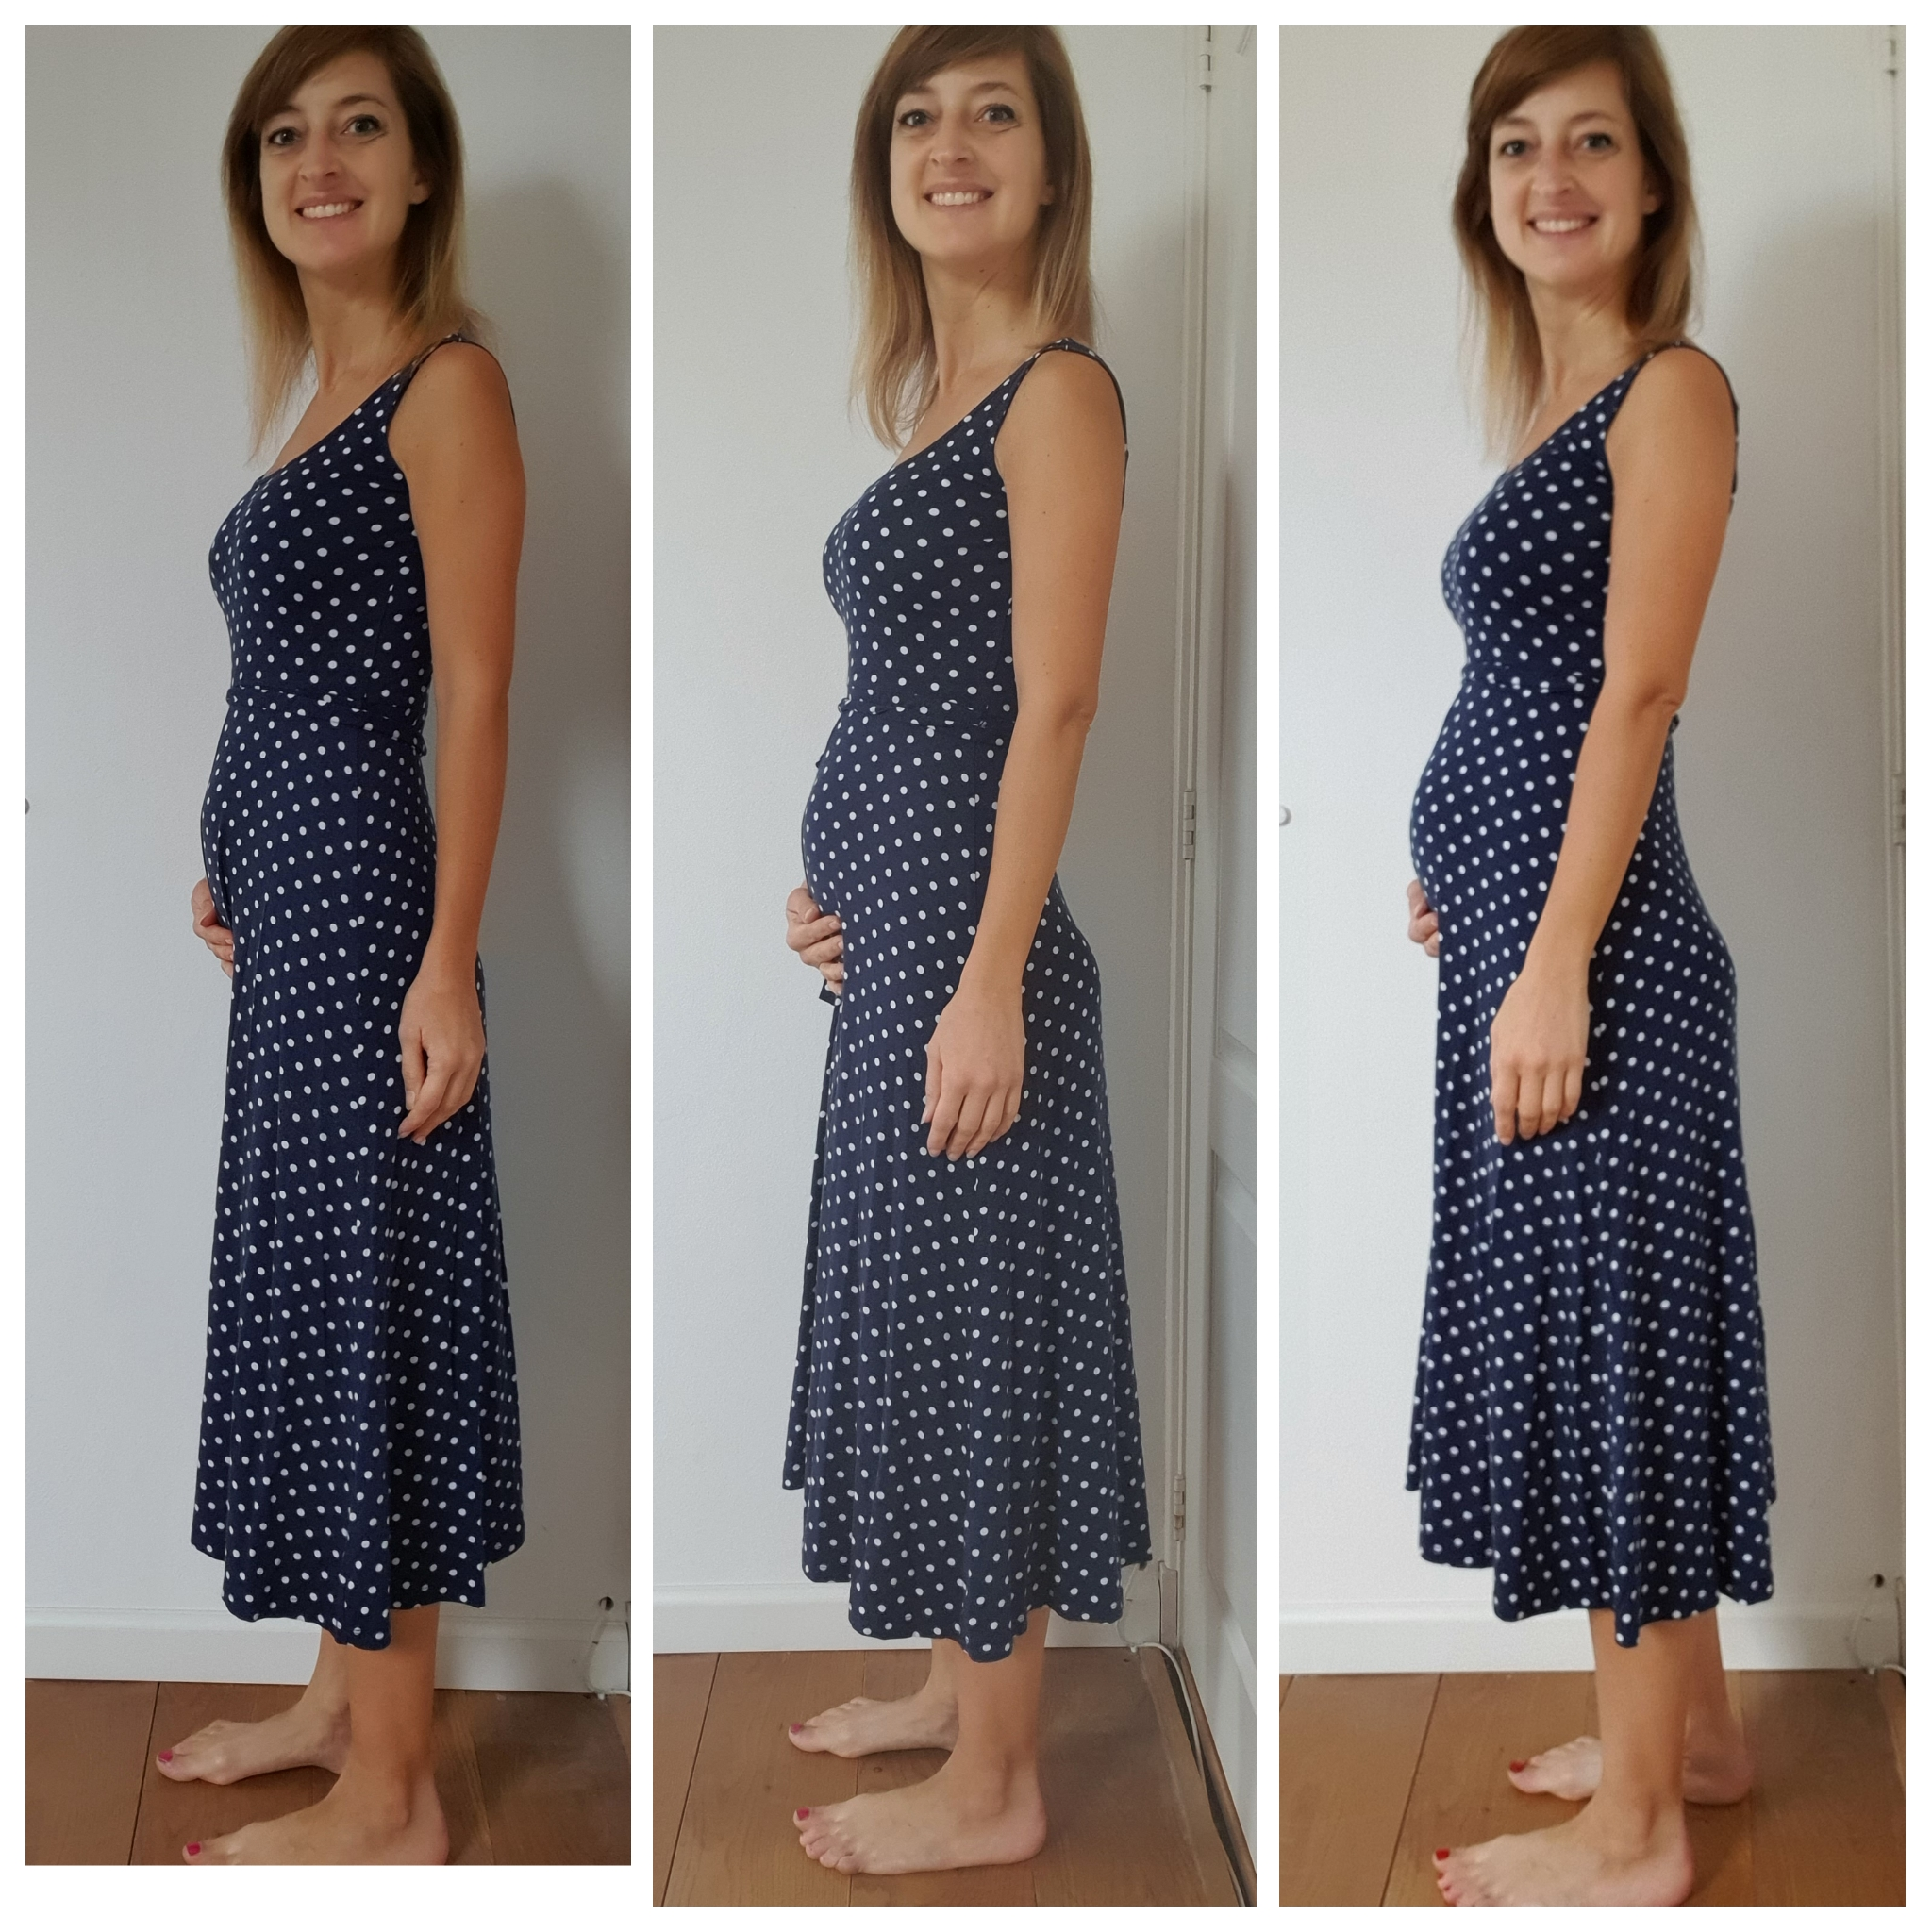 Pregnancy of second trimester Cramping During